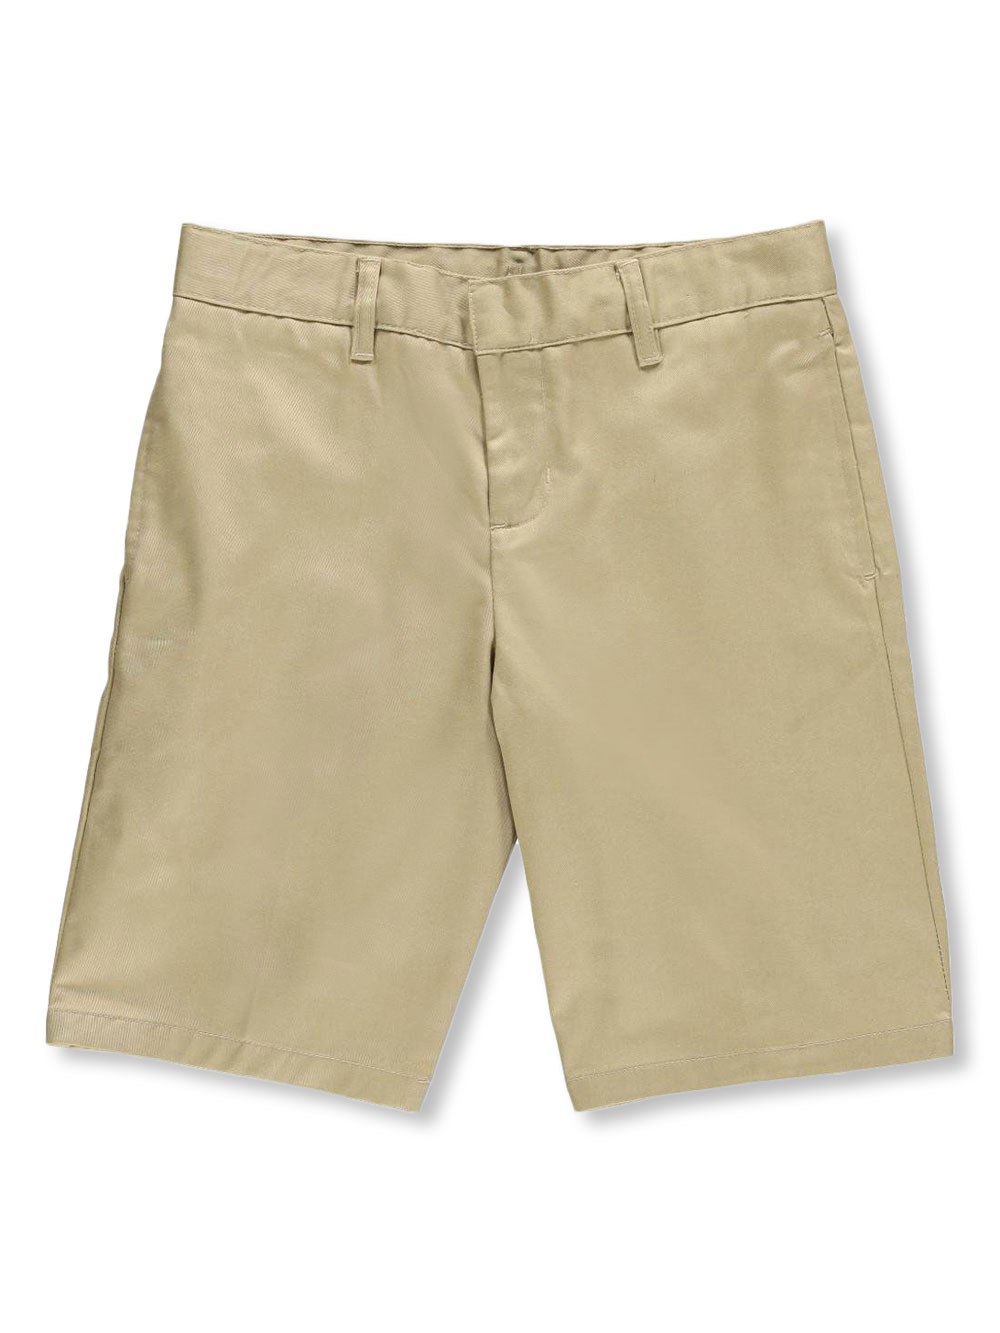 Size 18 Husky Shorts for Boys